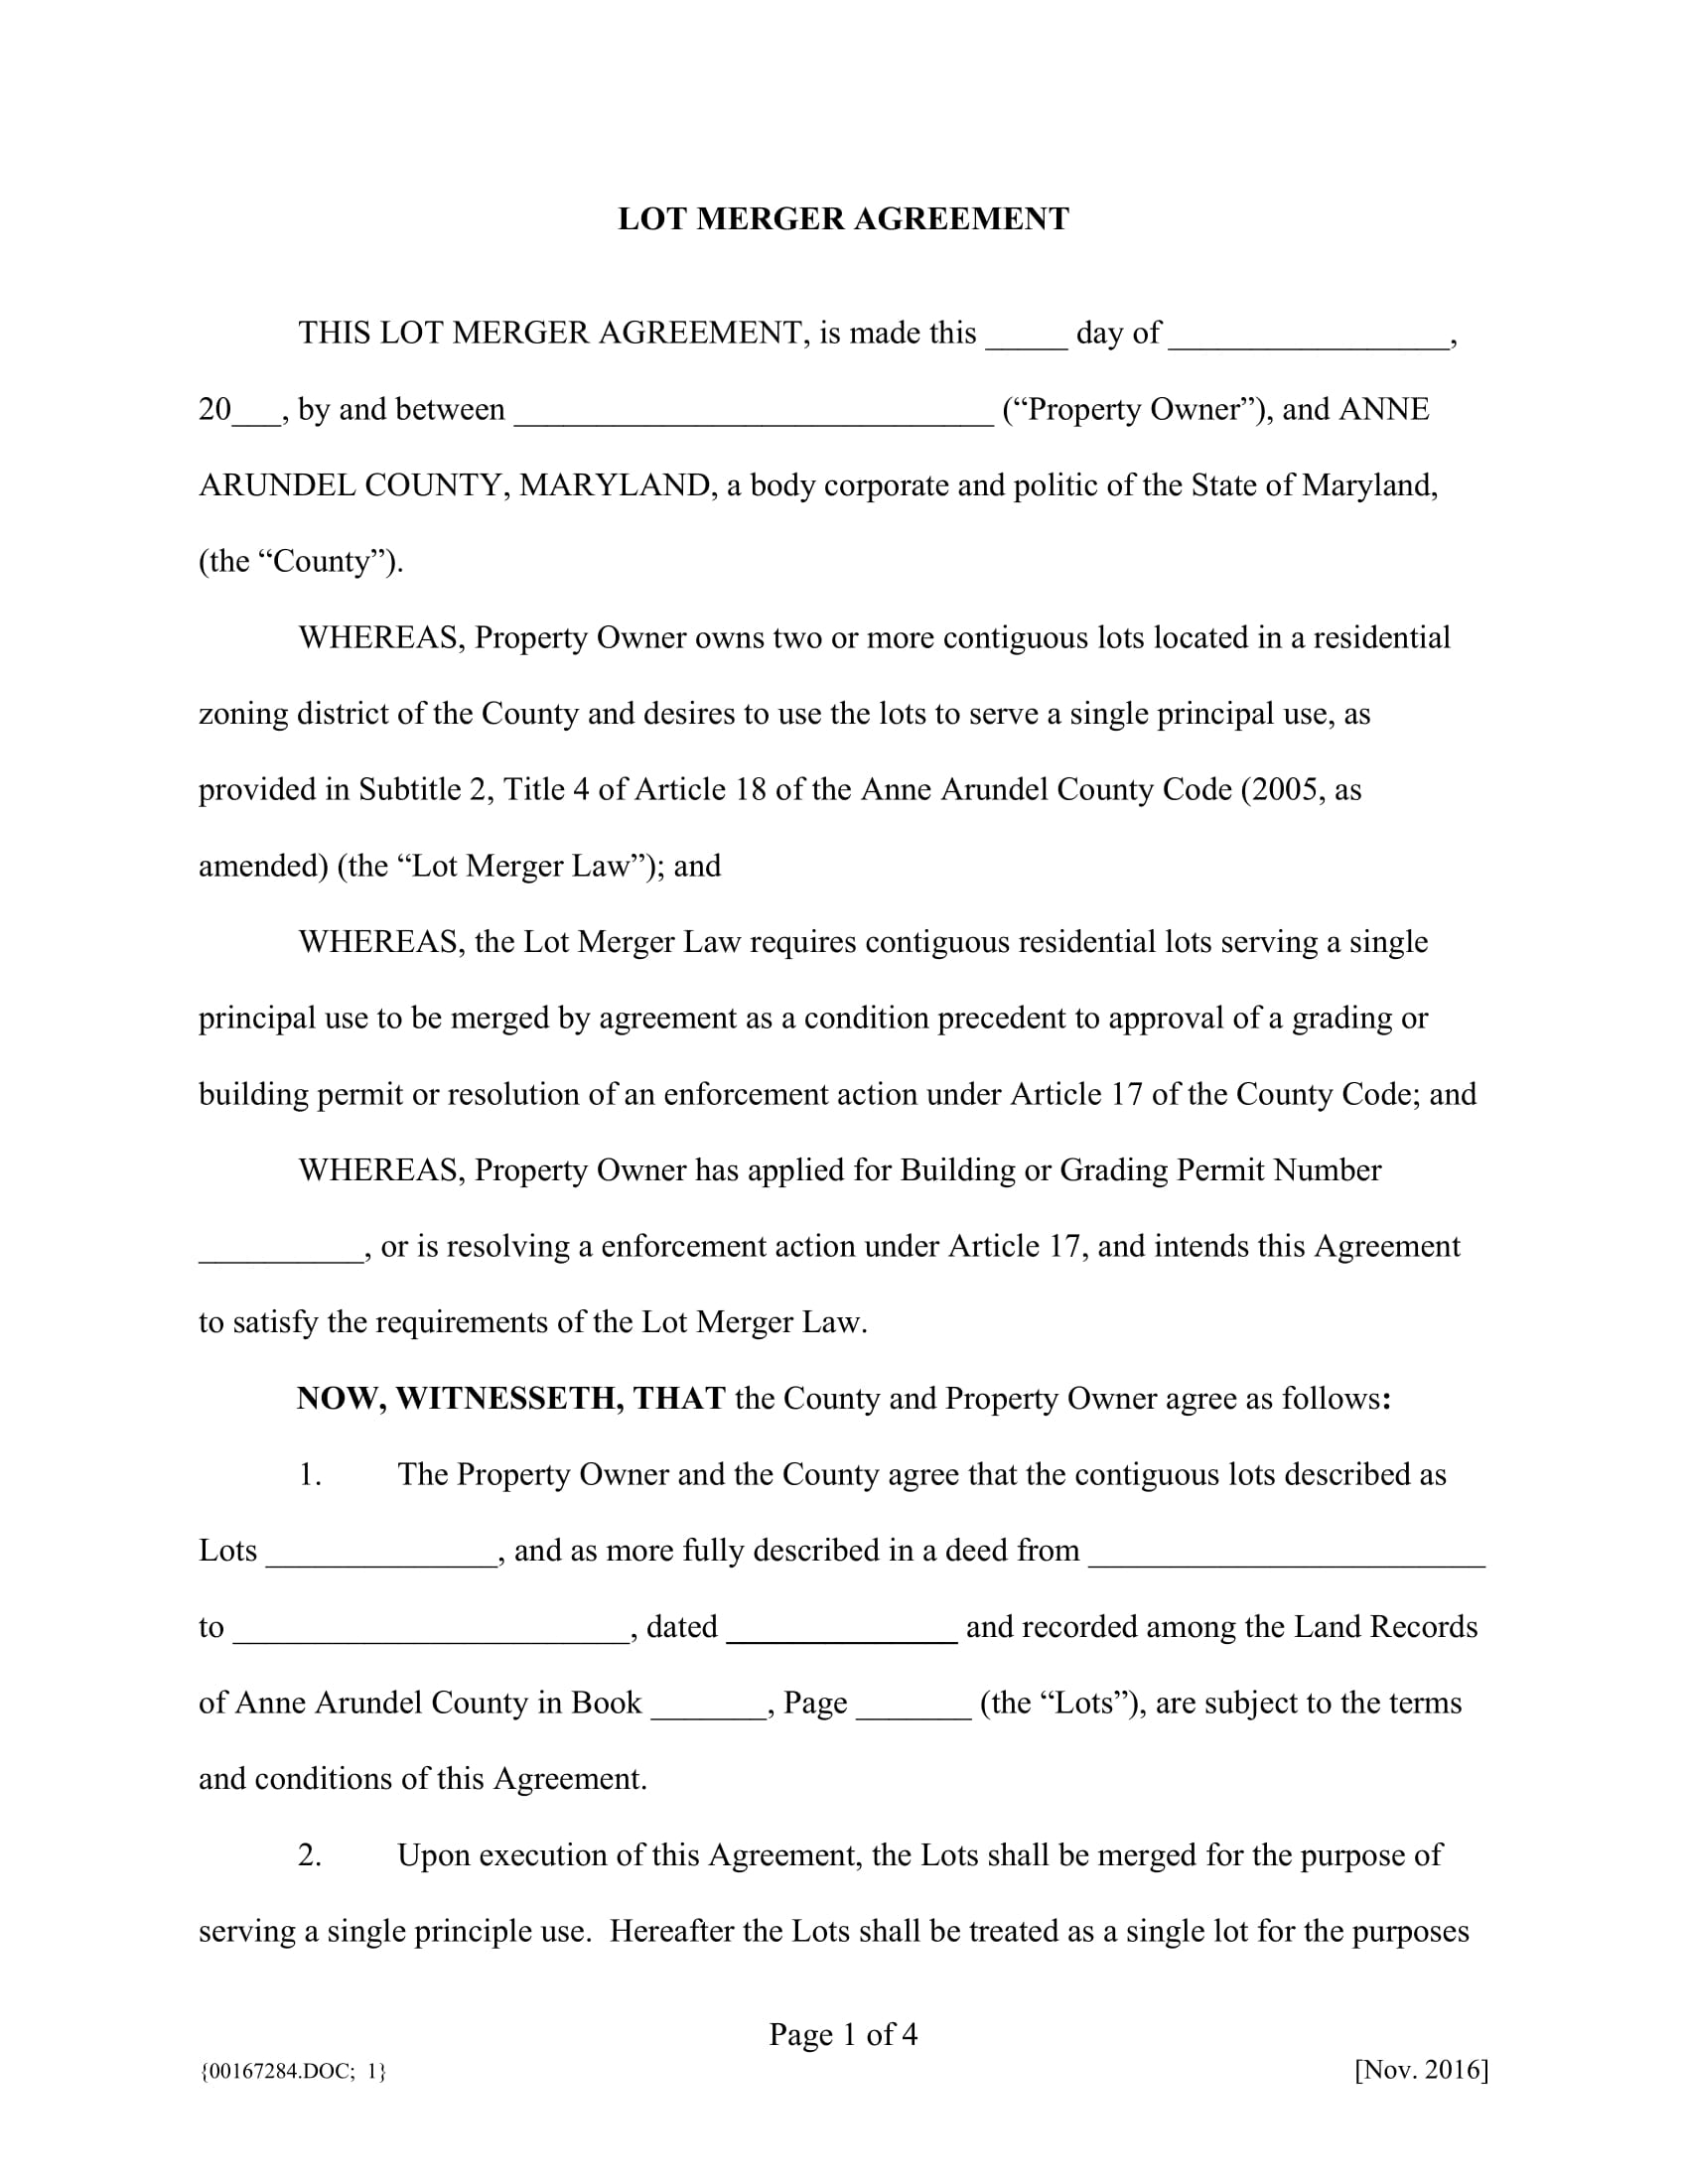 lot merger agreement contract form 1